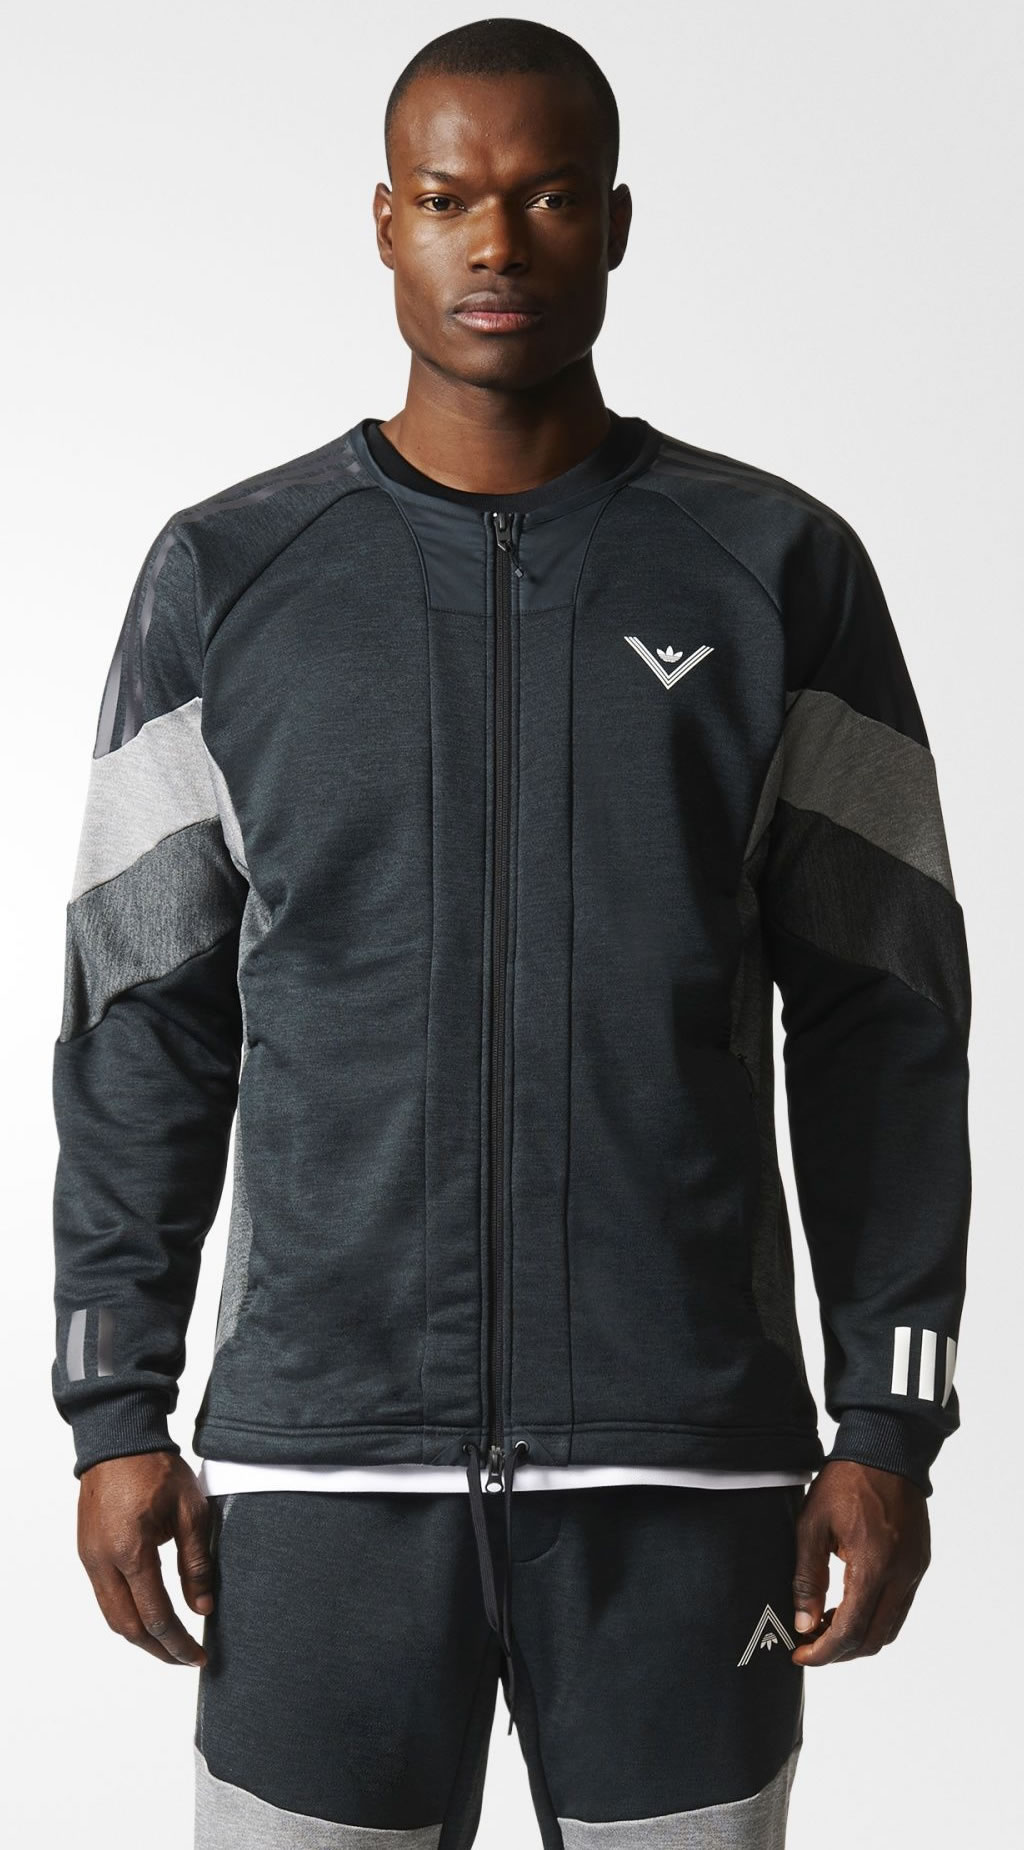 Challenger Track Jacket By White Mountaineering